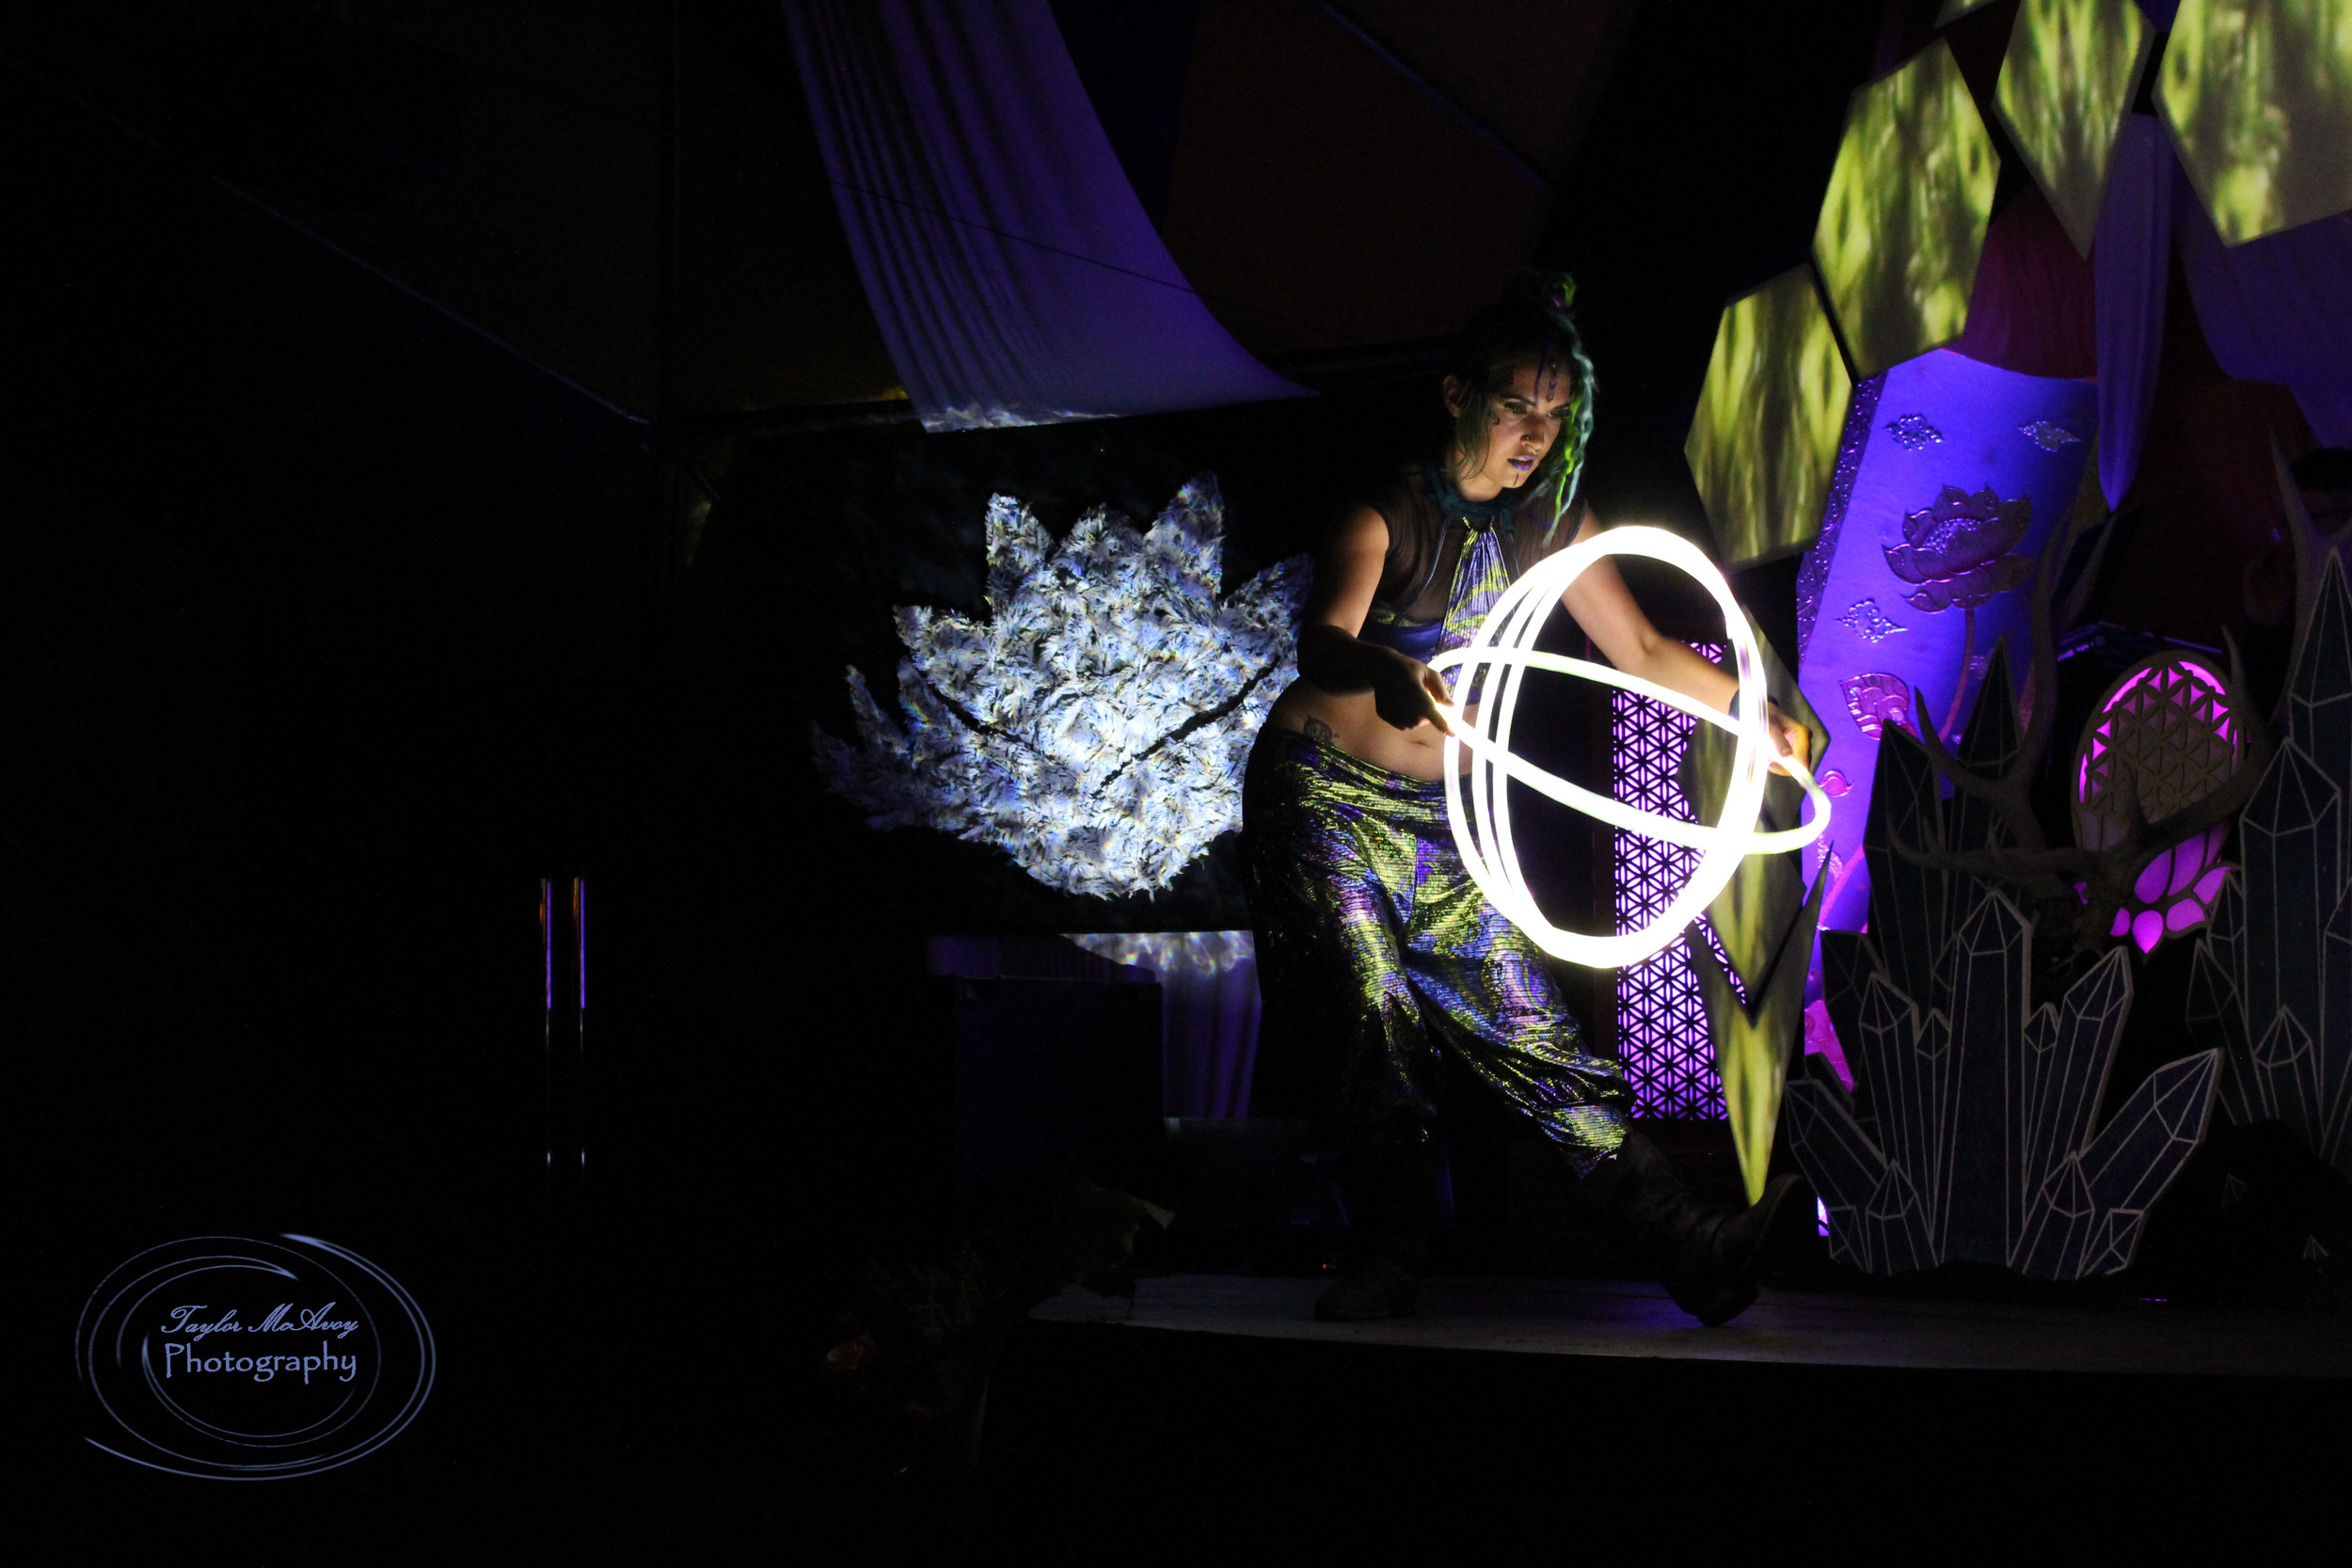 Performer Luma dances her hoop routine with four lighted hoops on stage before the dance floor in the Dream Dome.